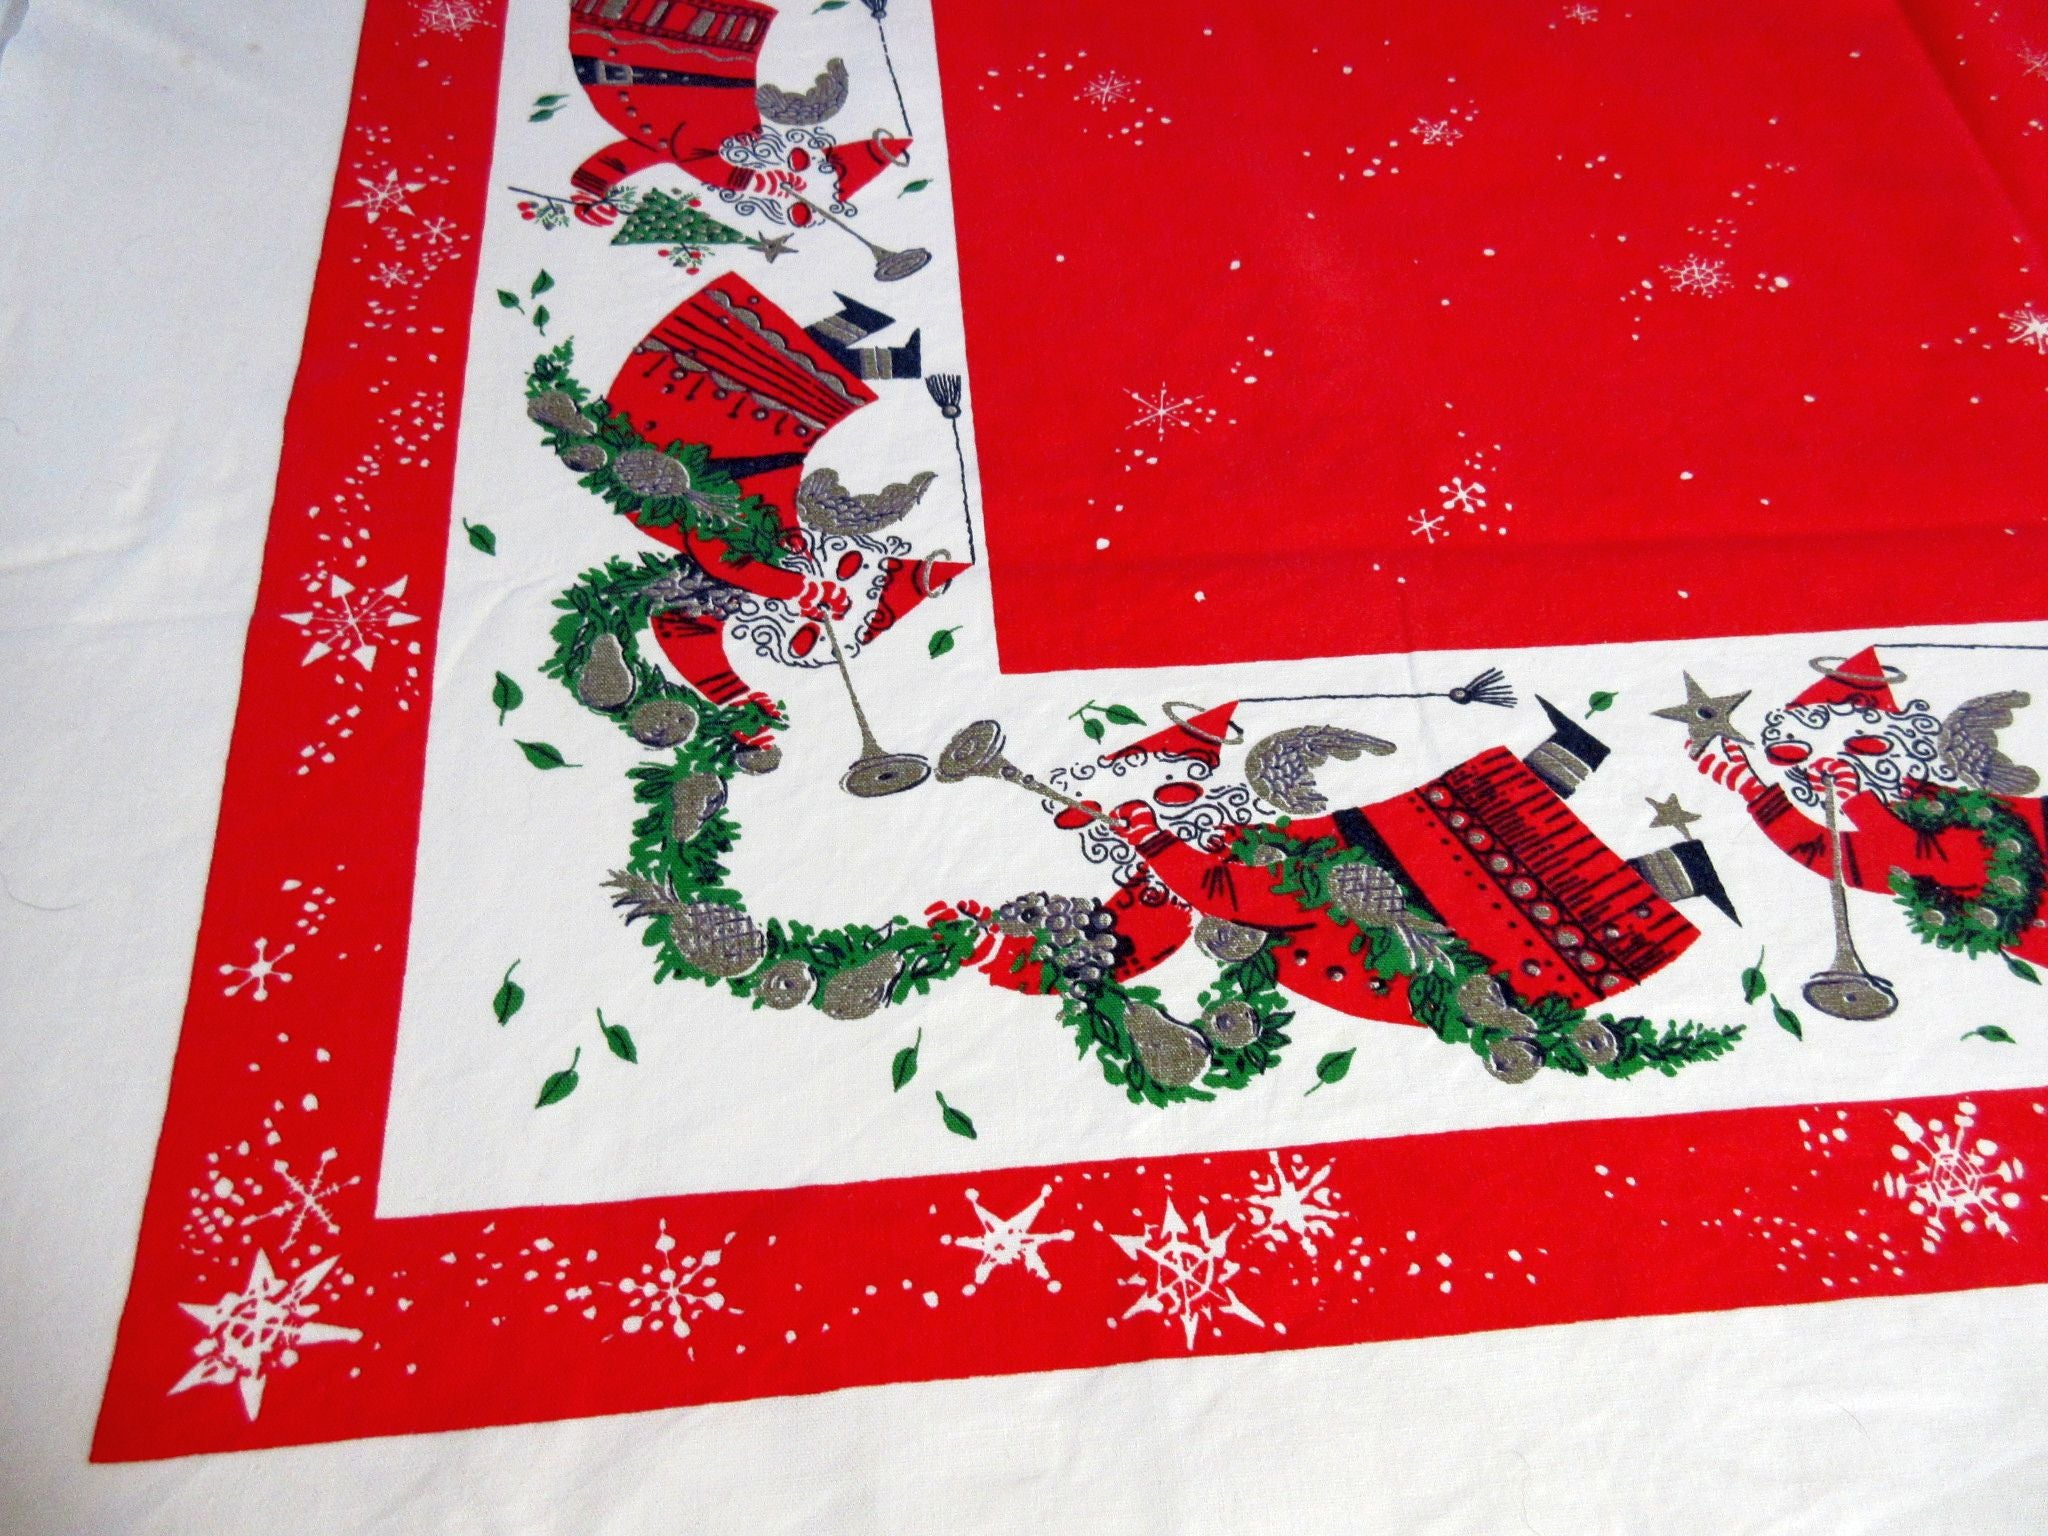 Dearden Flying Santas on Red Christmas Vintage Printed Tablecloth (55 X 47)